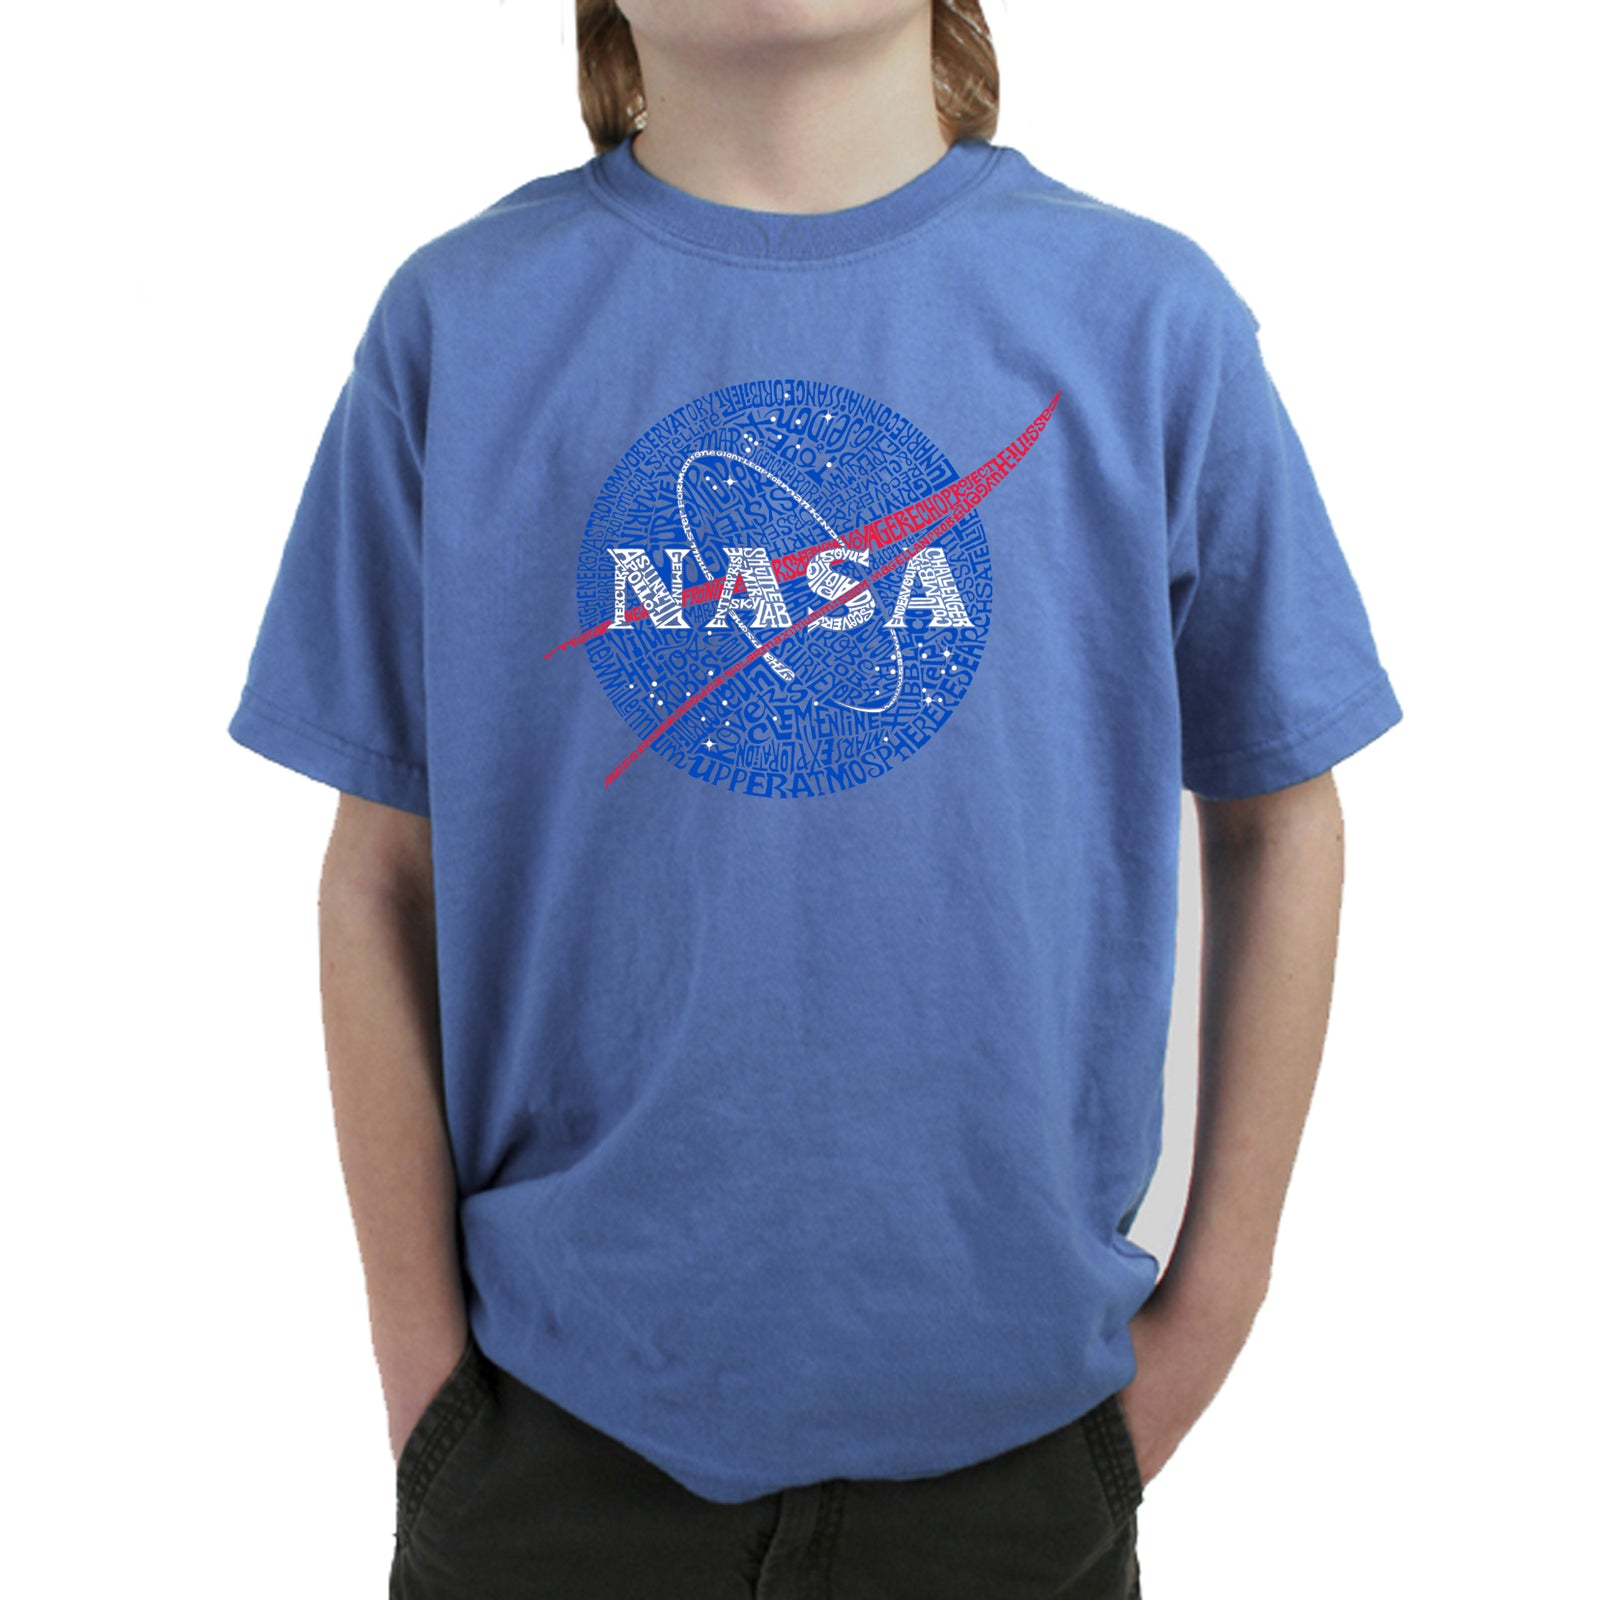 Boy's Word Art T-shirt - NASA's Most Notable Missions